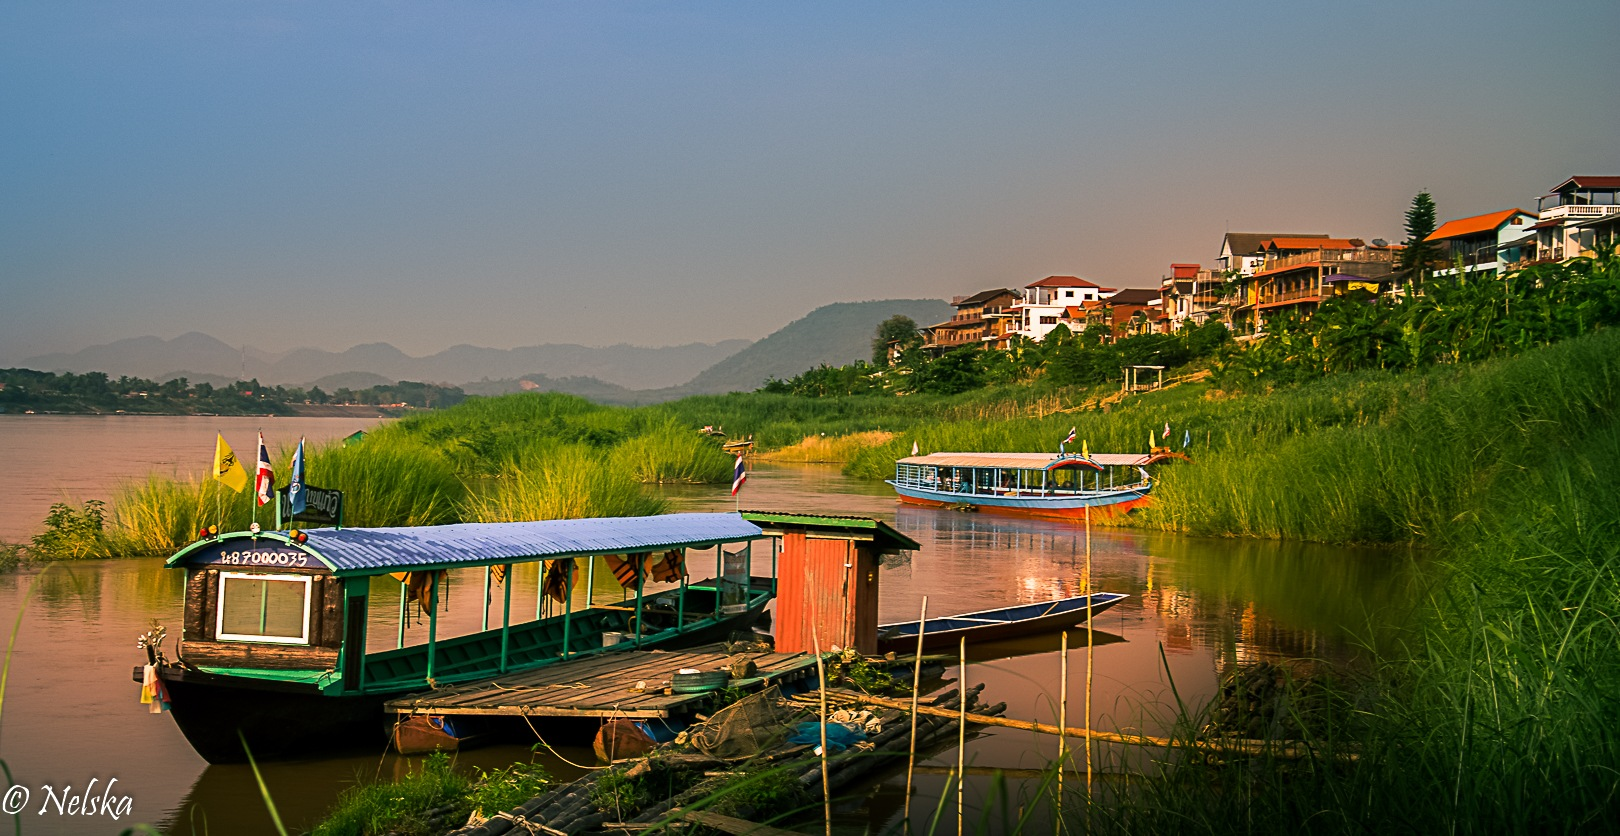 Sunset on the banks of the Mekong - North Thailand by Nelska